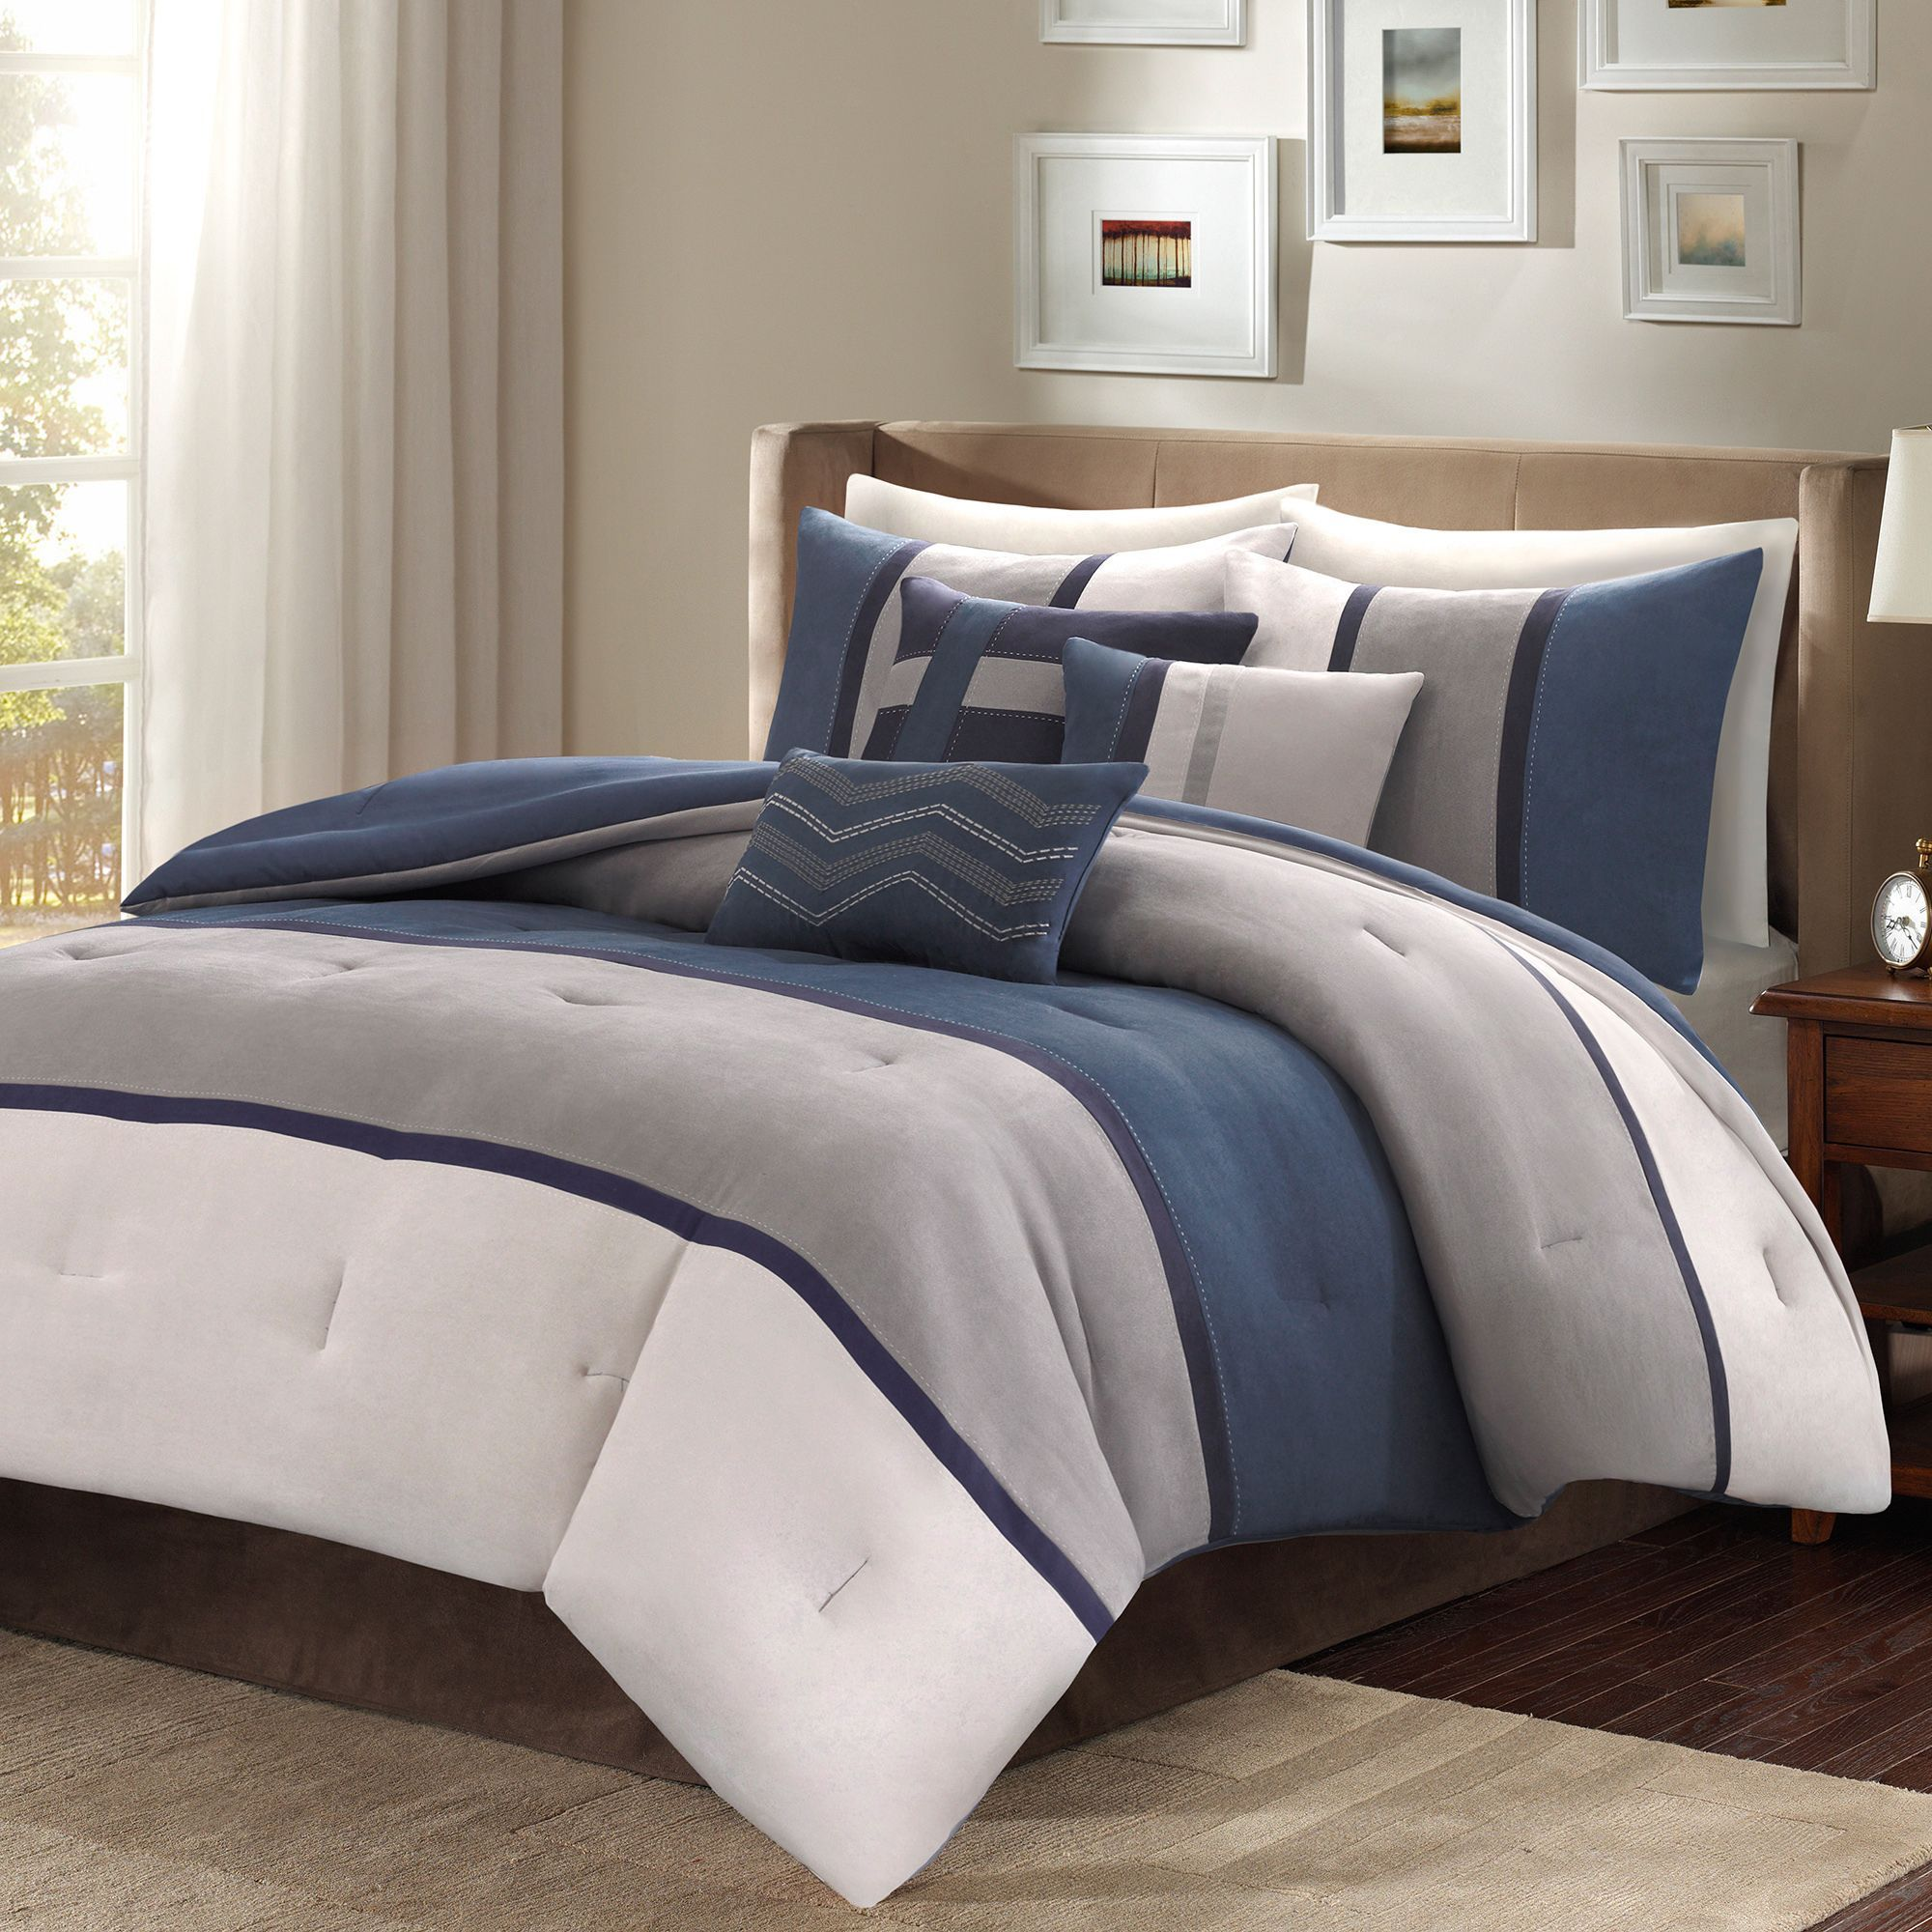 set com sears comforters admirable sets overstock concept to home bed ross wwe with regard bedding your bedroom